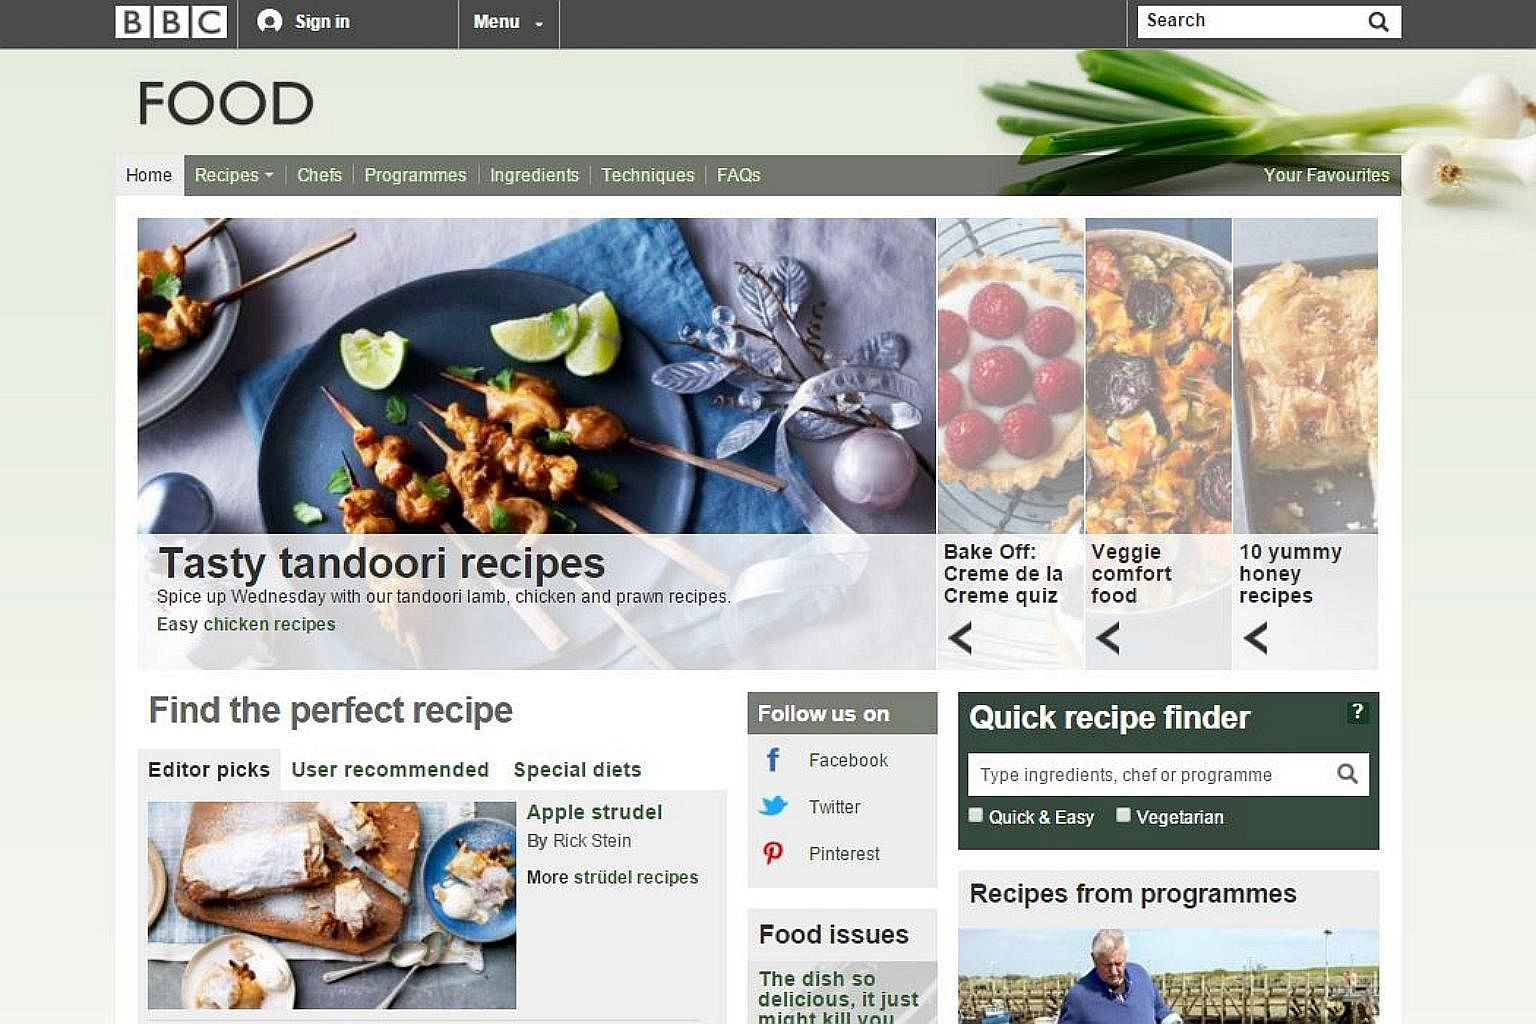 From fish curry to chocolate cake 10 all time favourite bbc online from fish curry to chocolate cake 10 all time favourite bbc online recipes food news top stories the straits times forumfinder Image collections